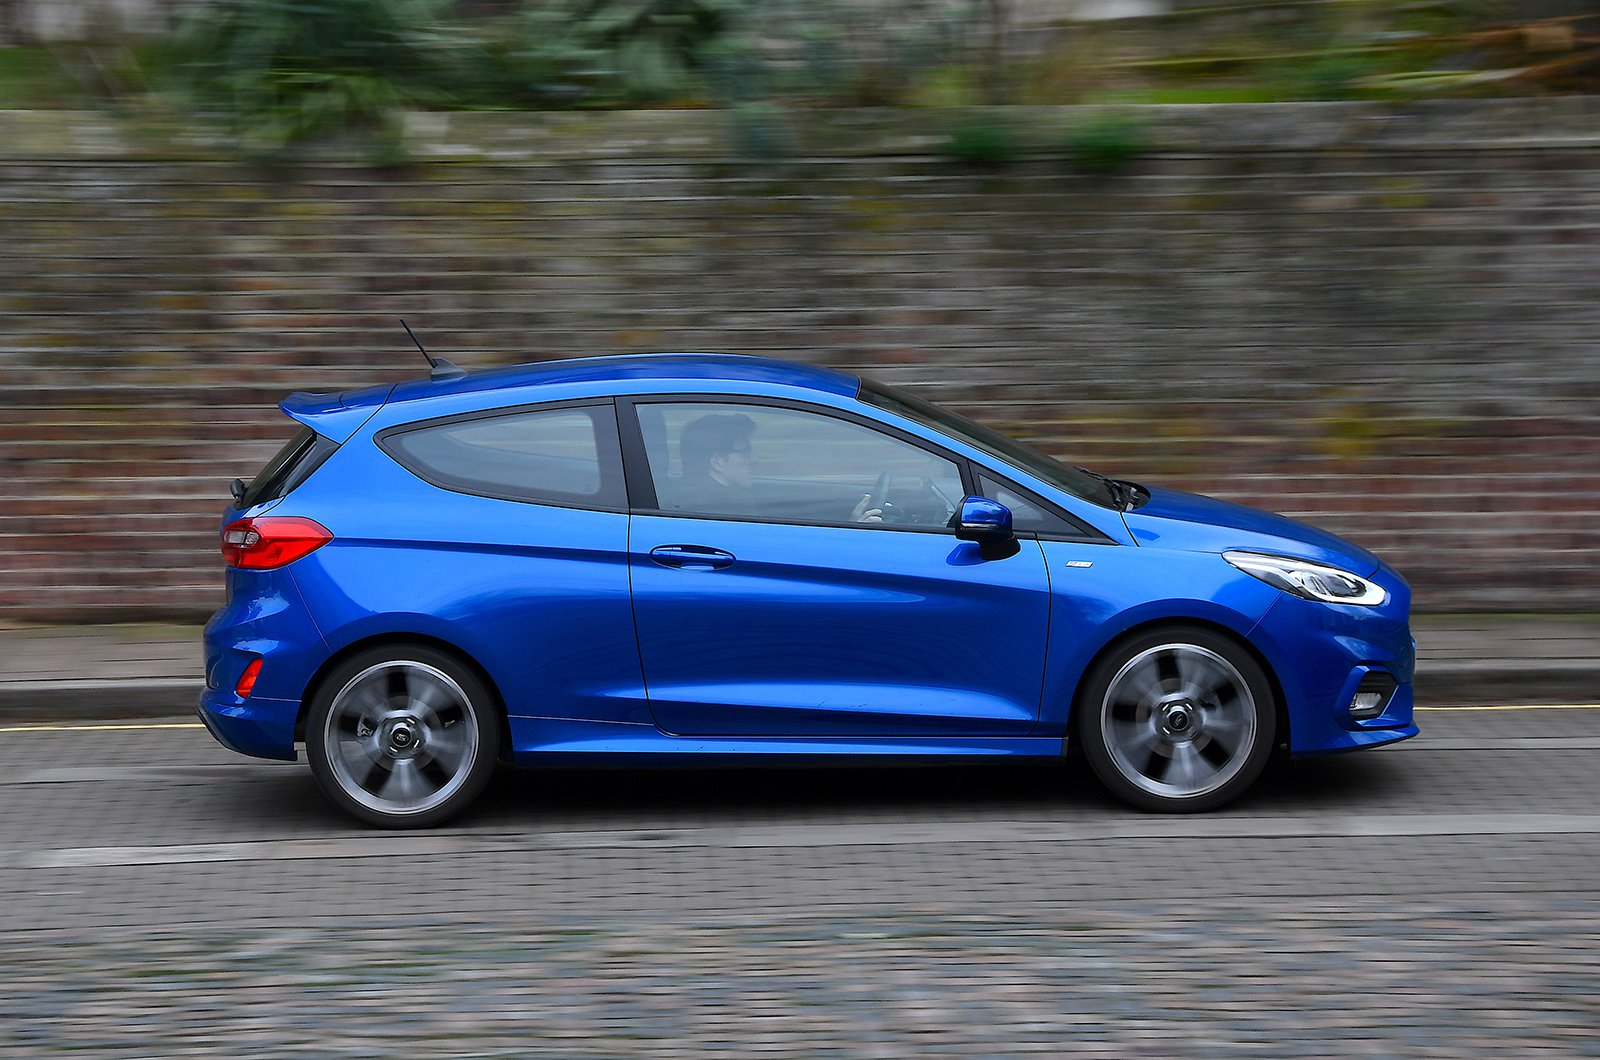 Used Ford Fiesta (17-present) long term test review